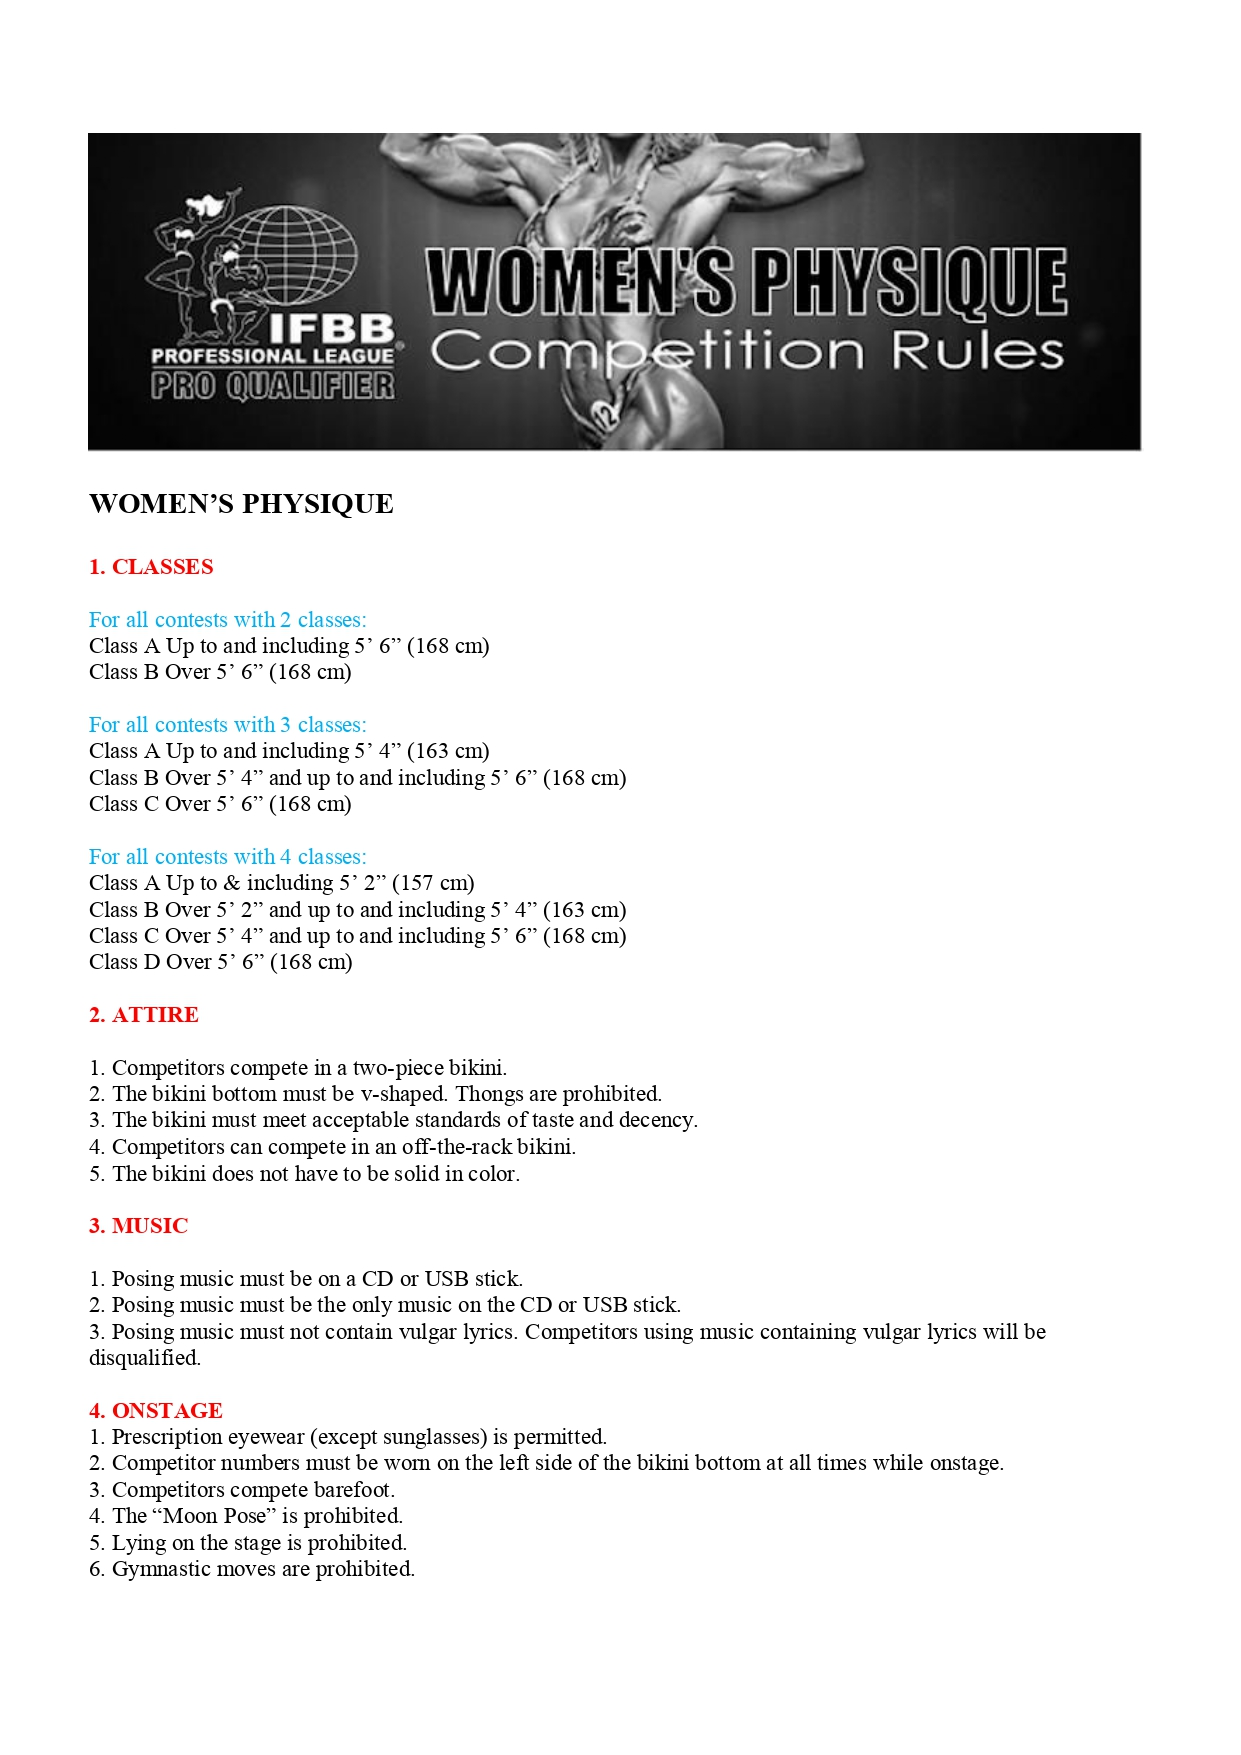 IFBB-rules_page-0015